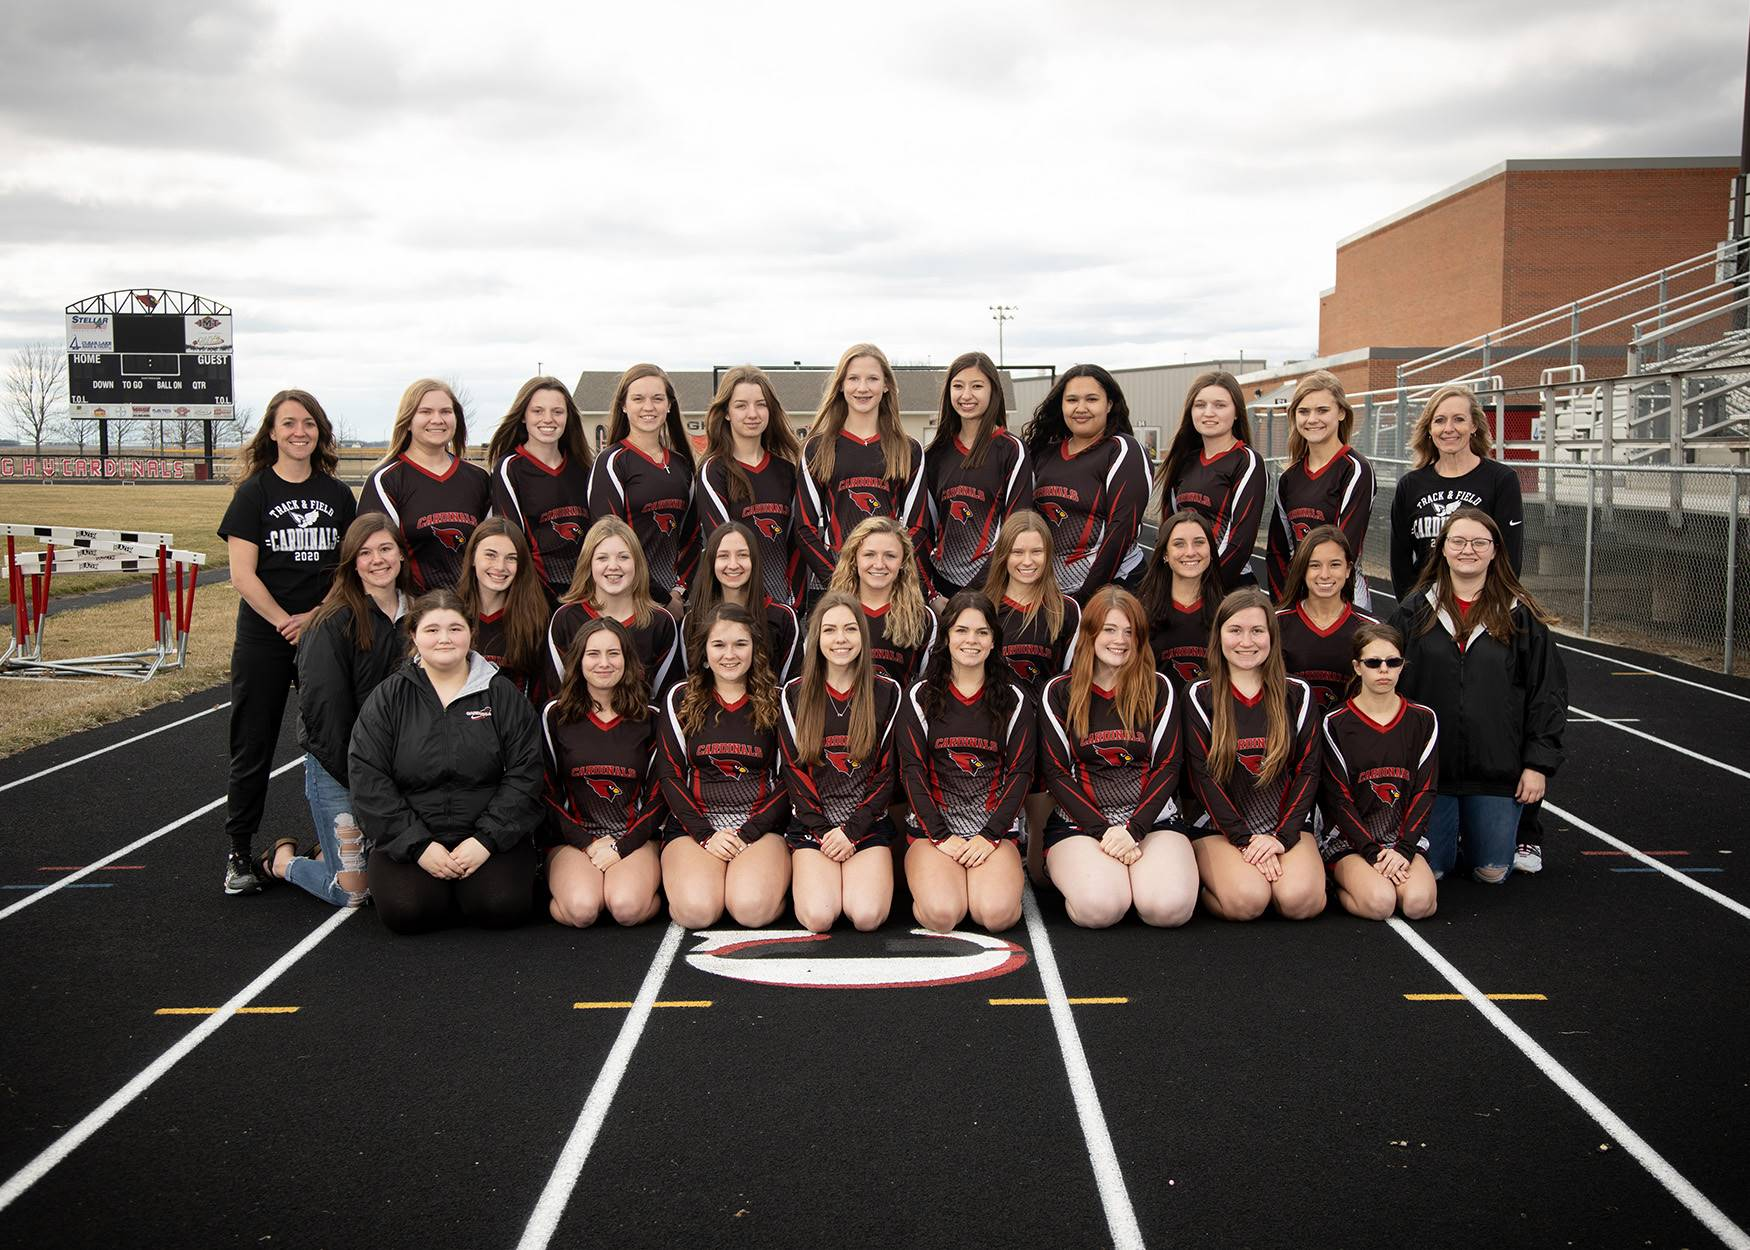 Girls Track team posing for a photo